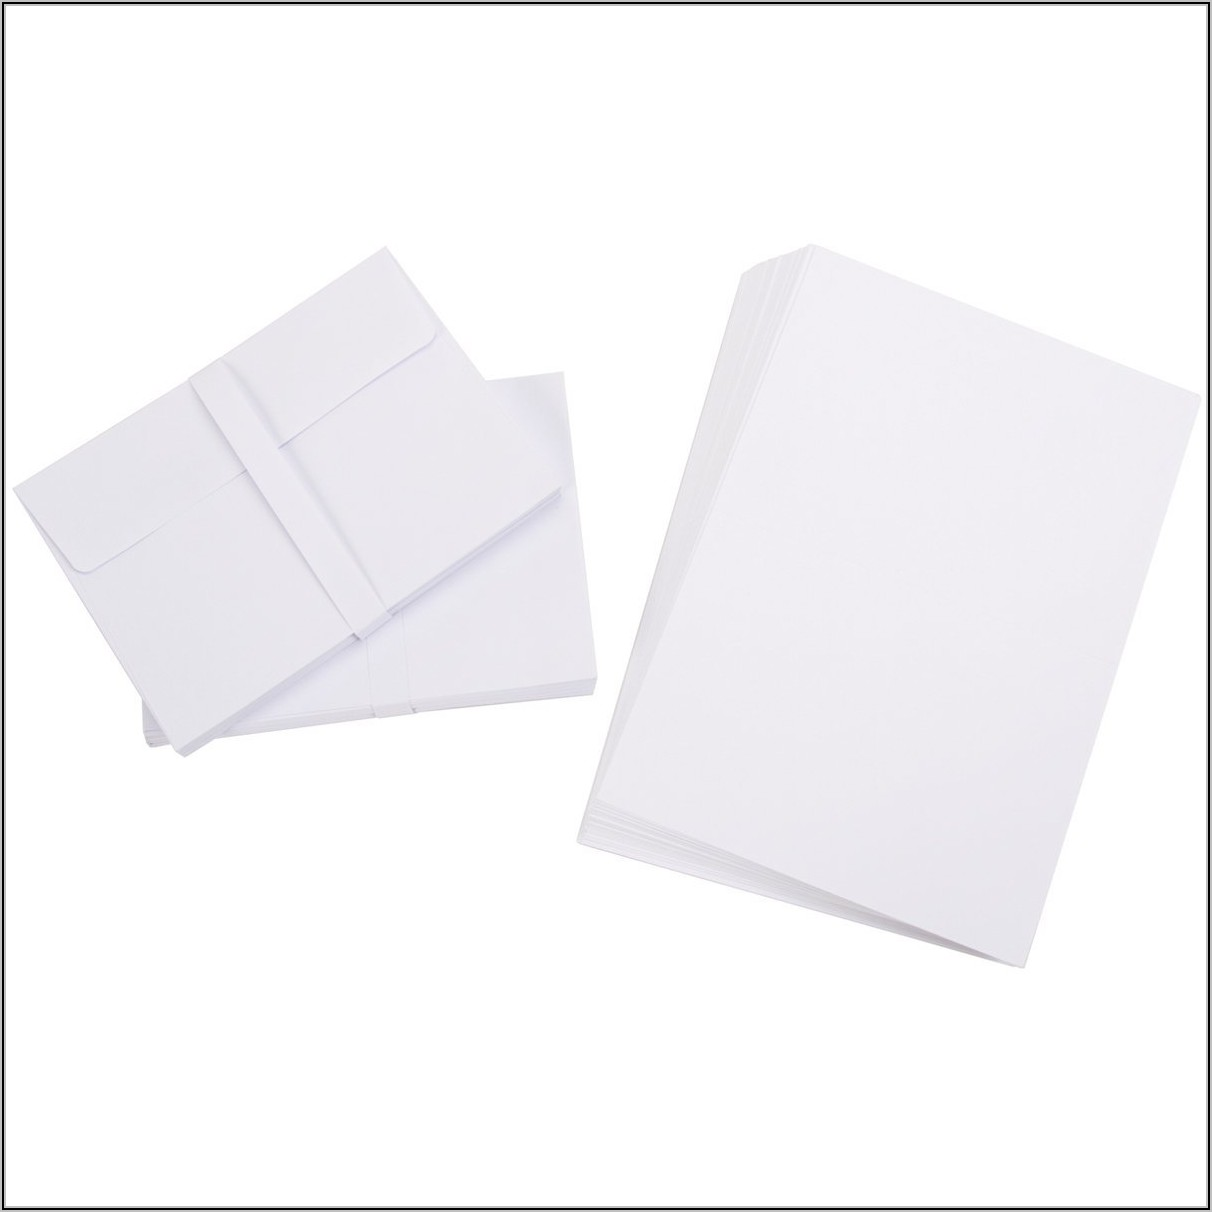 Darice A7 Cards And Envelopes